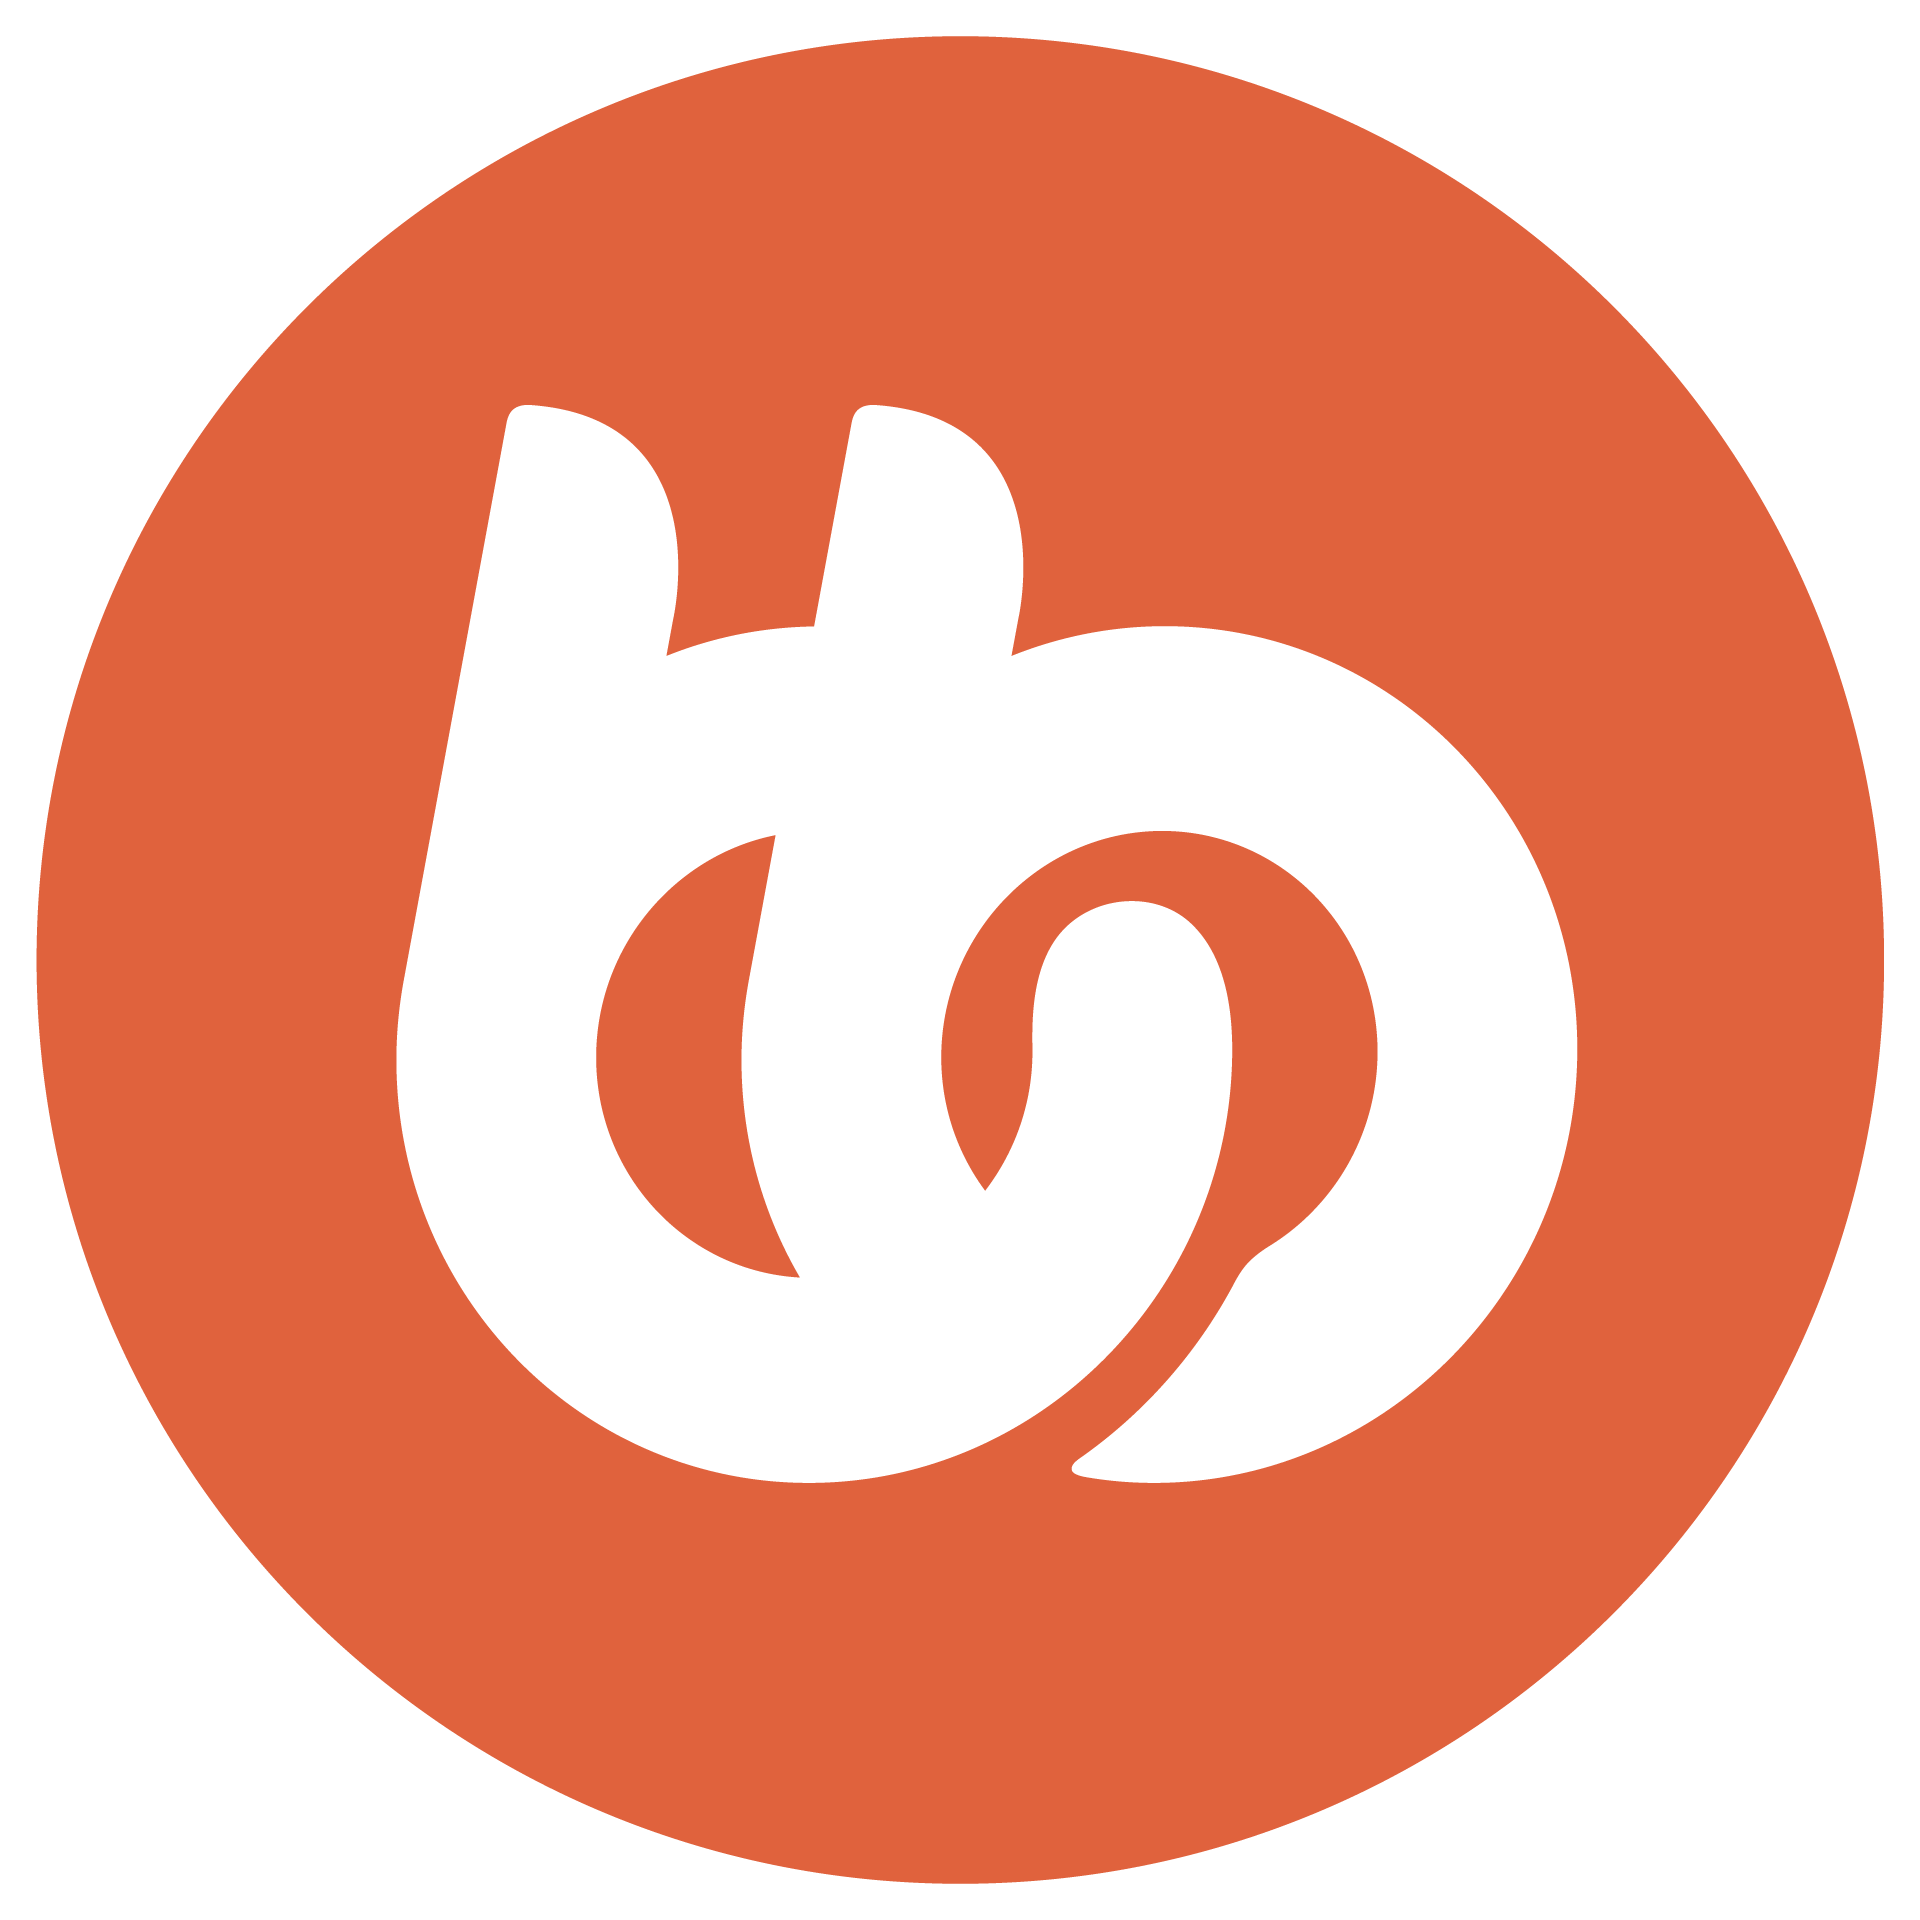 BB_Logos_Colored_Icon